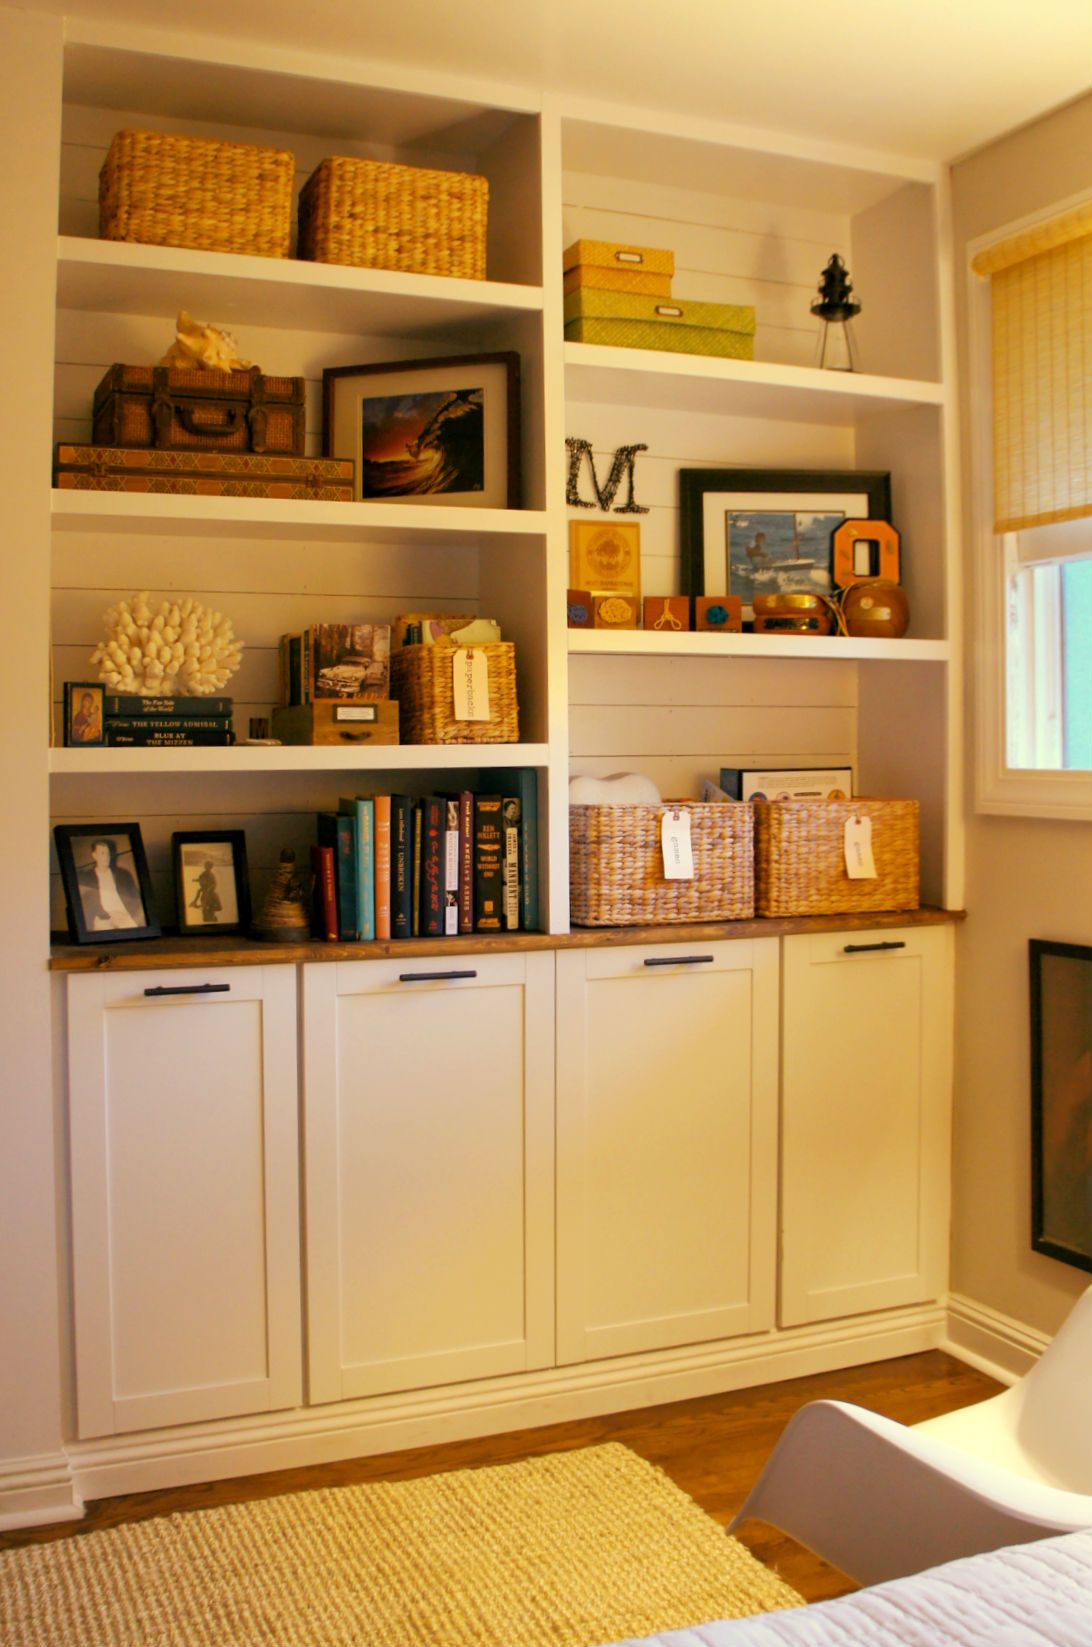 Shiplap shelves over builtin cabinets pre fabricated upper kitchen